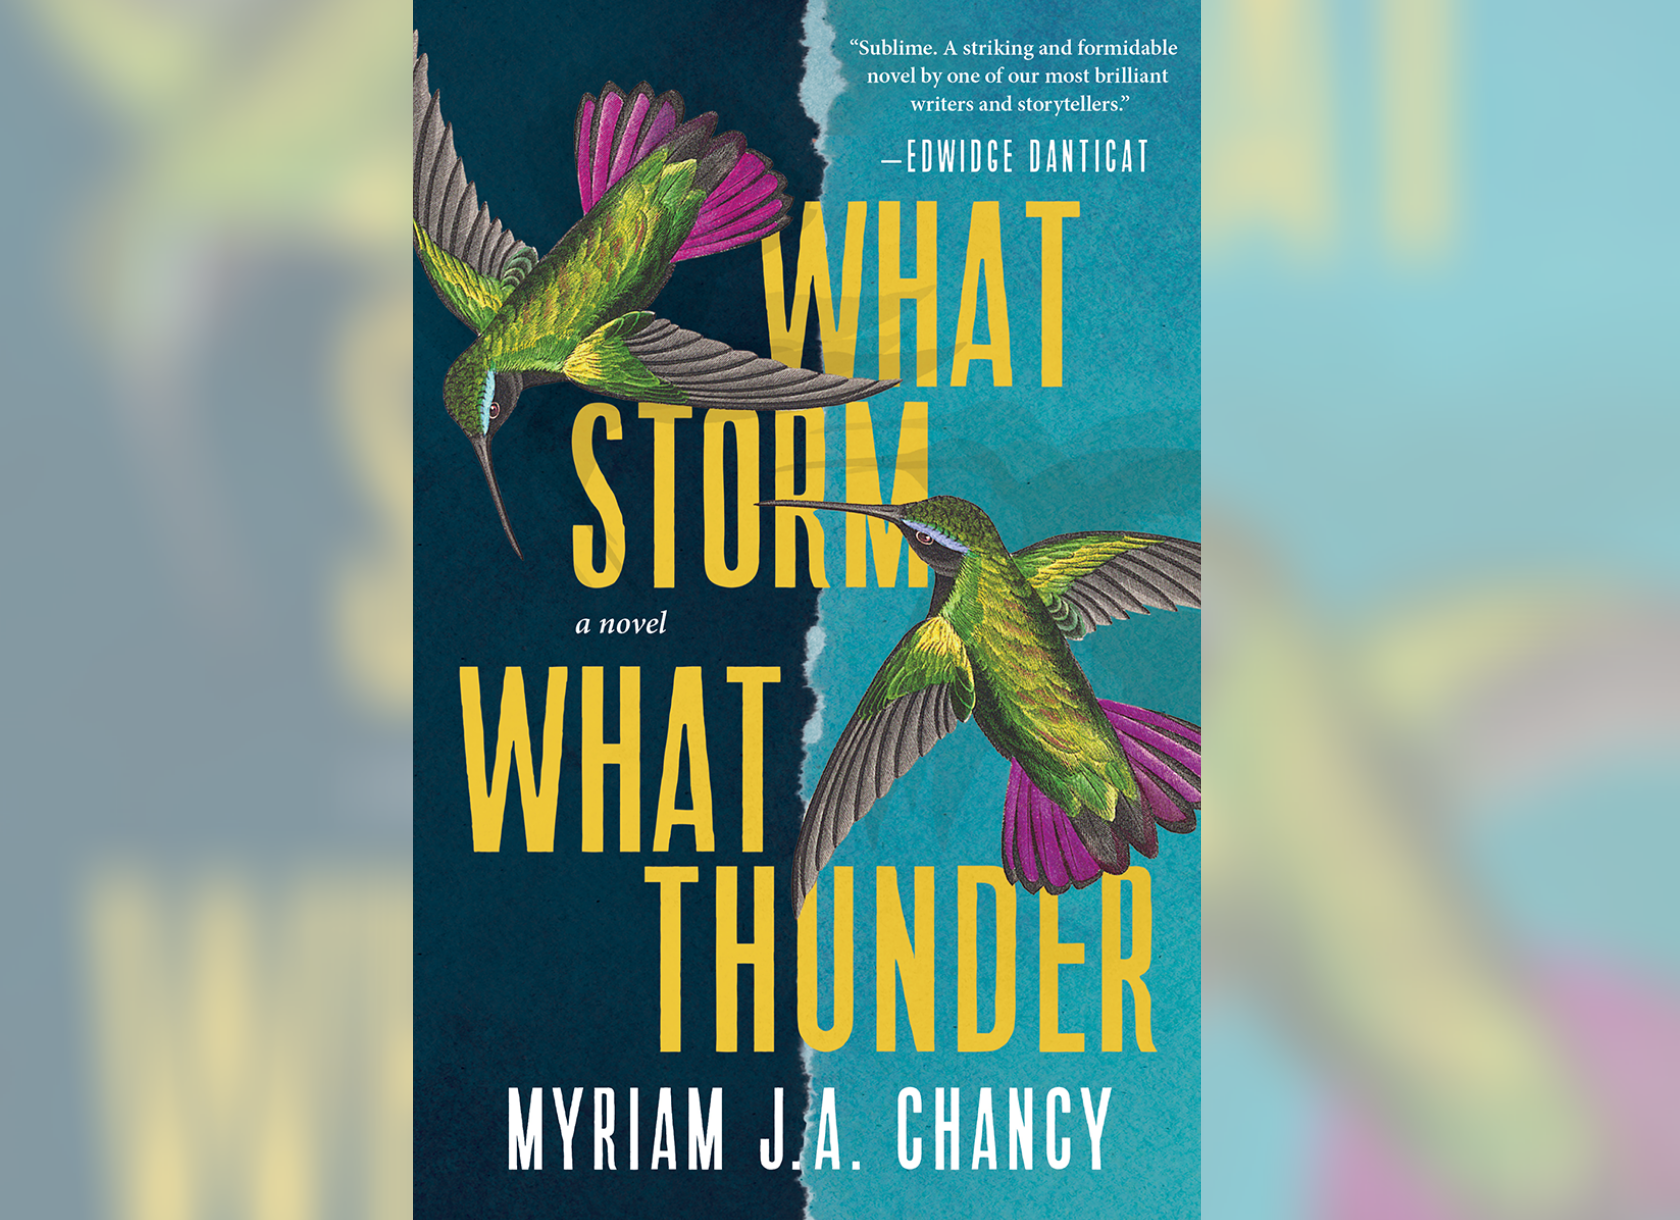 Cover art for Myriam J.A. Chancy's What Noise, What Thunder